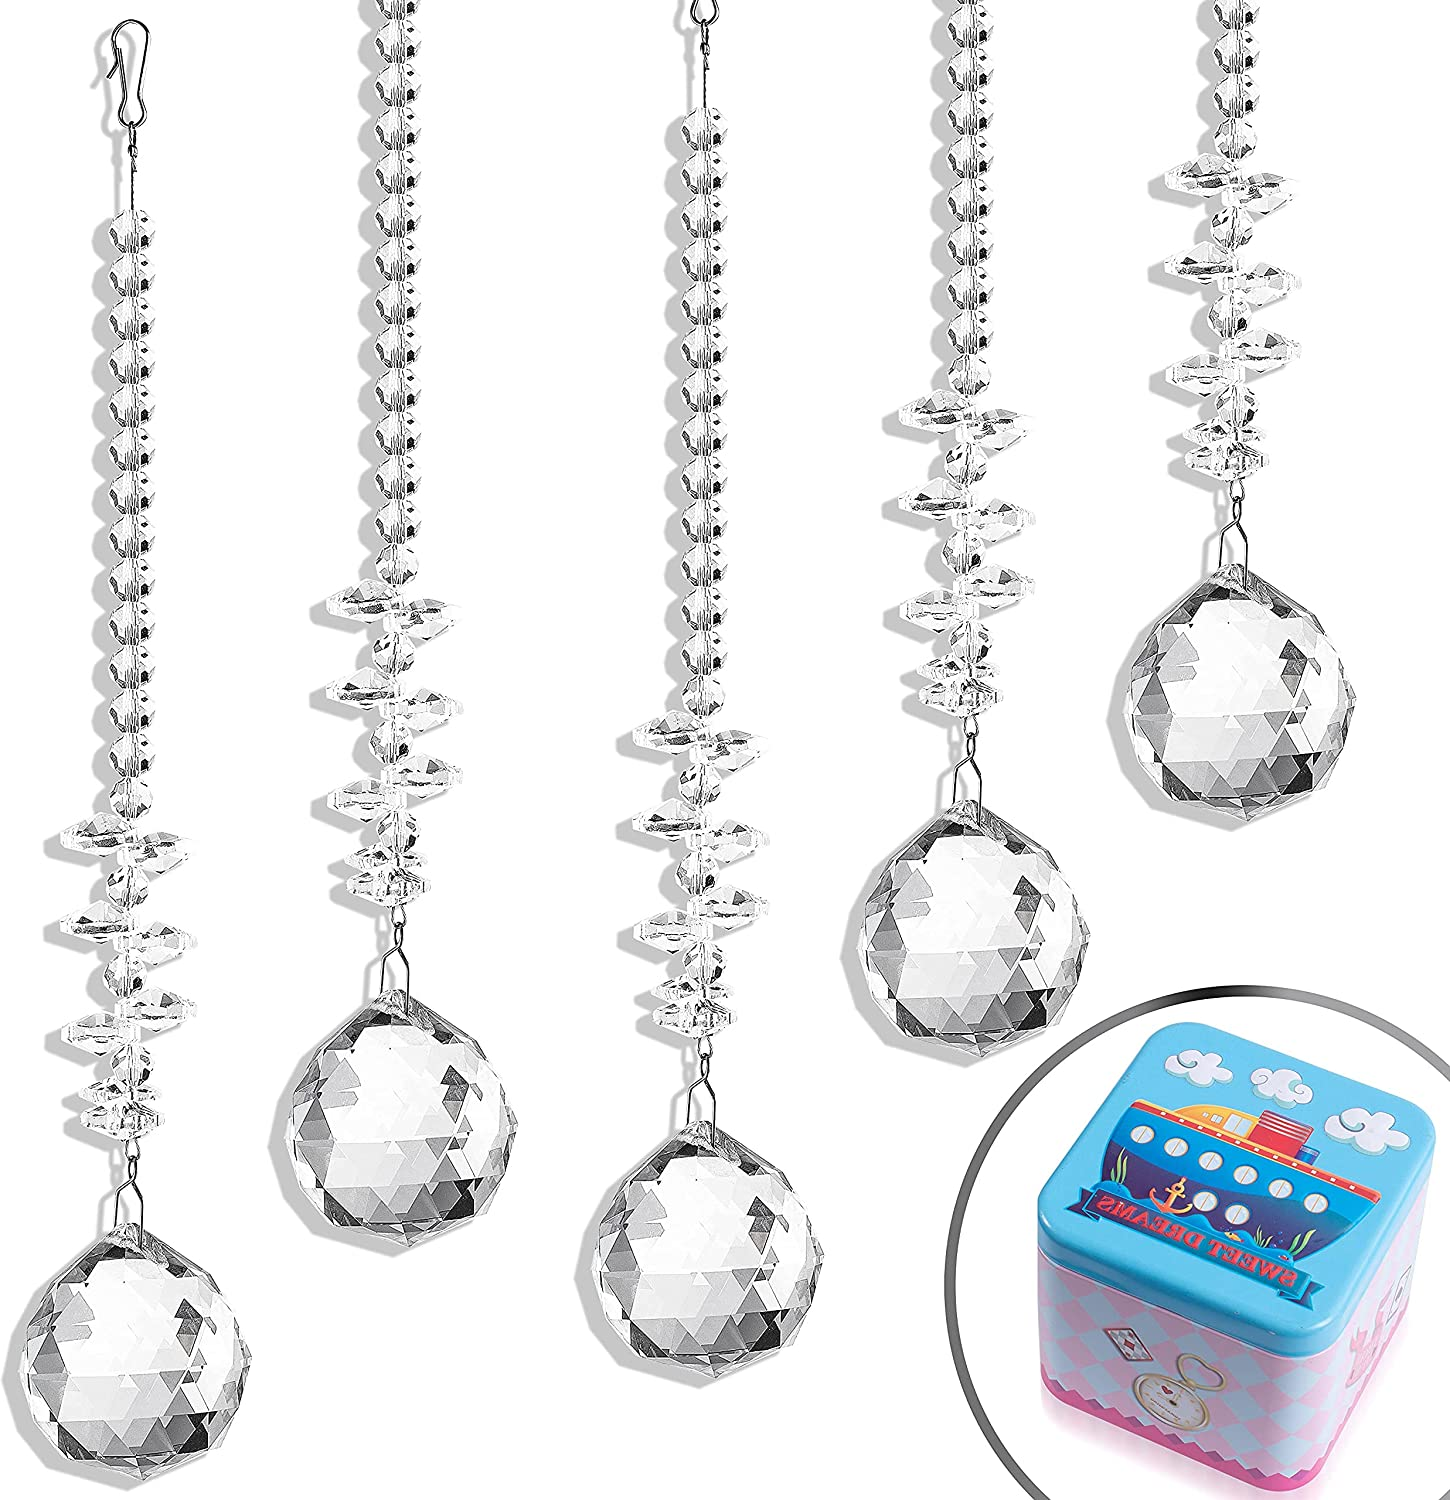 Transparent Crystal Beads Max 90% OFF Prism Decoration Ball Crysta 100% quality warranty! Hanging